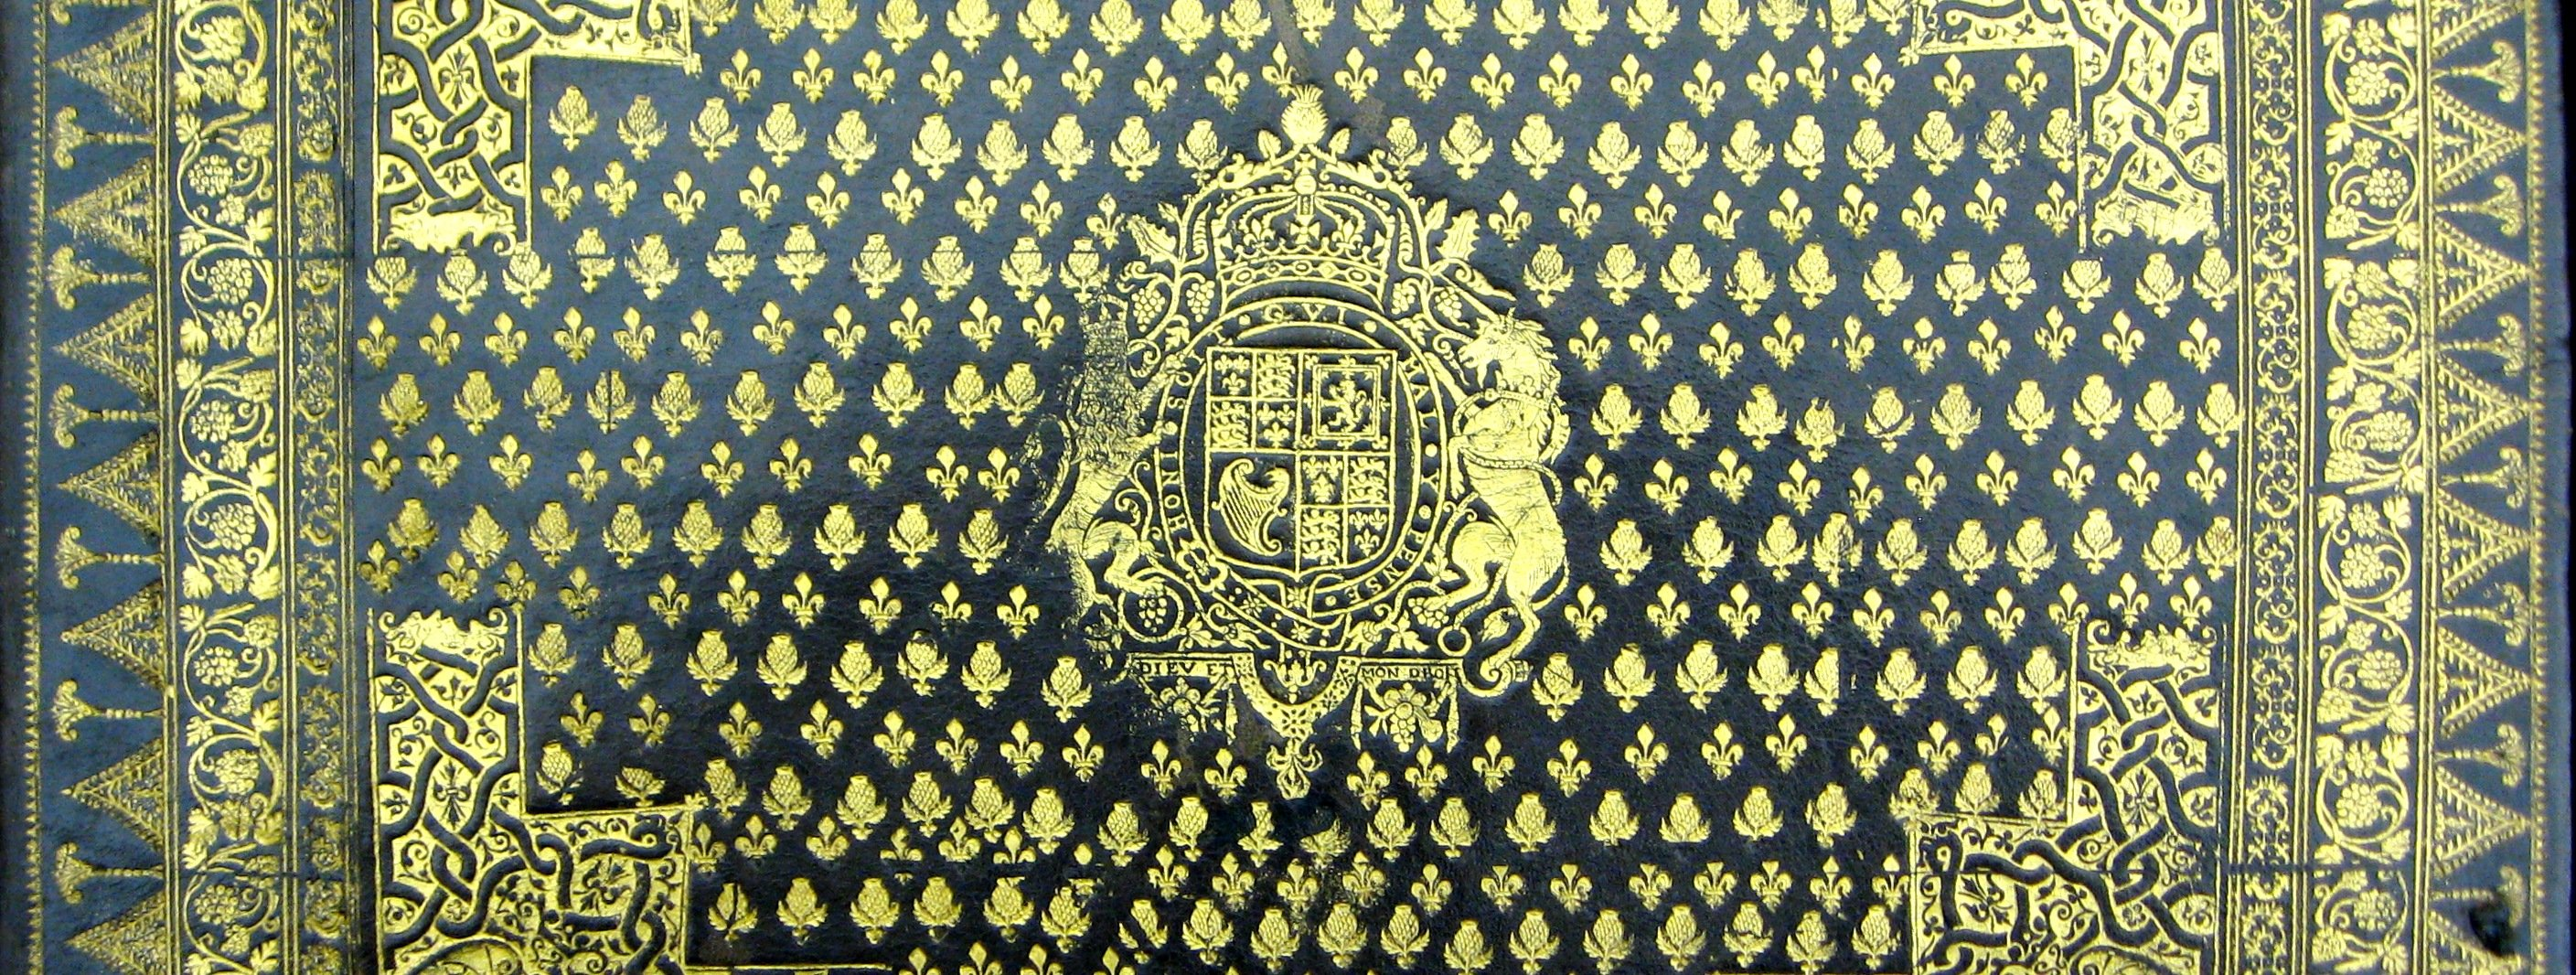 Armorial binding with the Royal Arms of Charles I